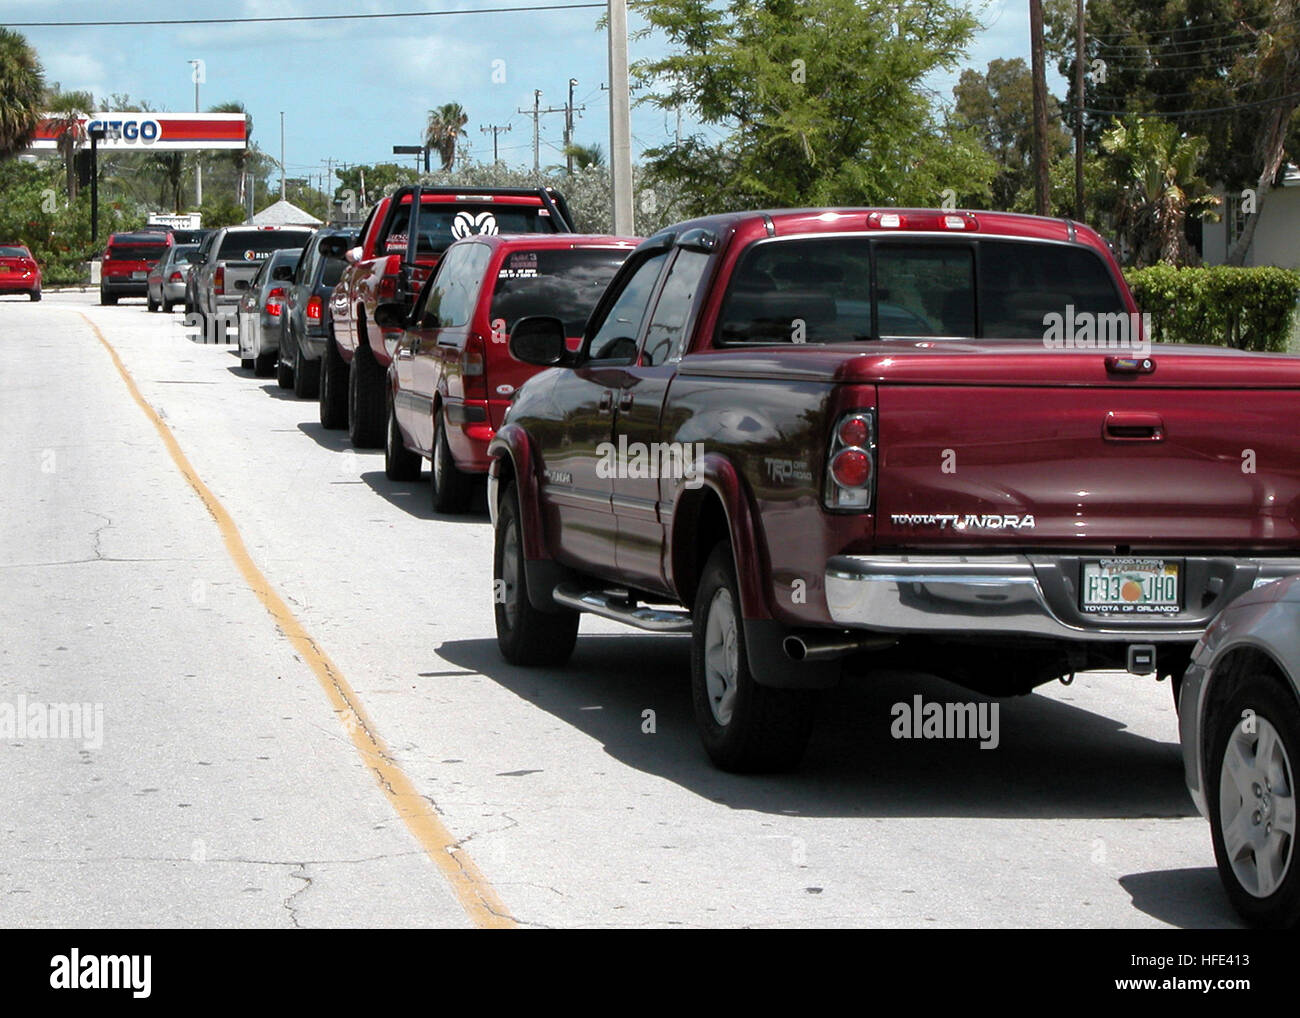 040909-N-9246W-007 Naval Air Station Key West, Fla. (Sep. 9, 2004) - A line of motorists wait for their turn to Stock Photo